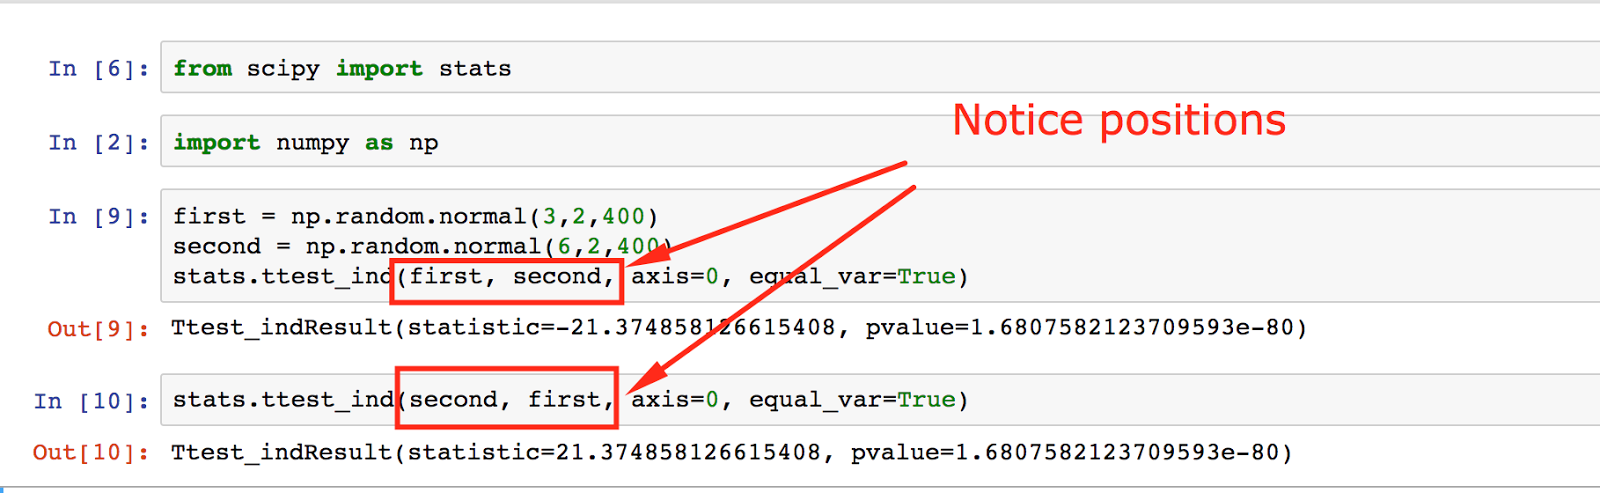 Viz Panda: How to perform two-sample one-tailed t-test in Python